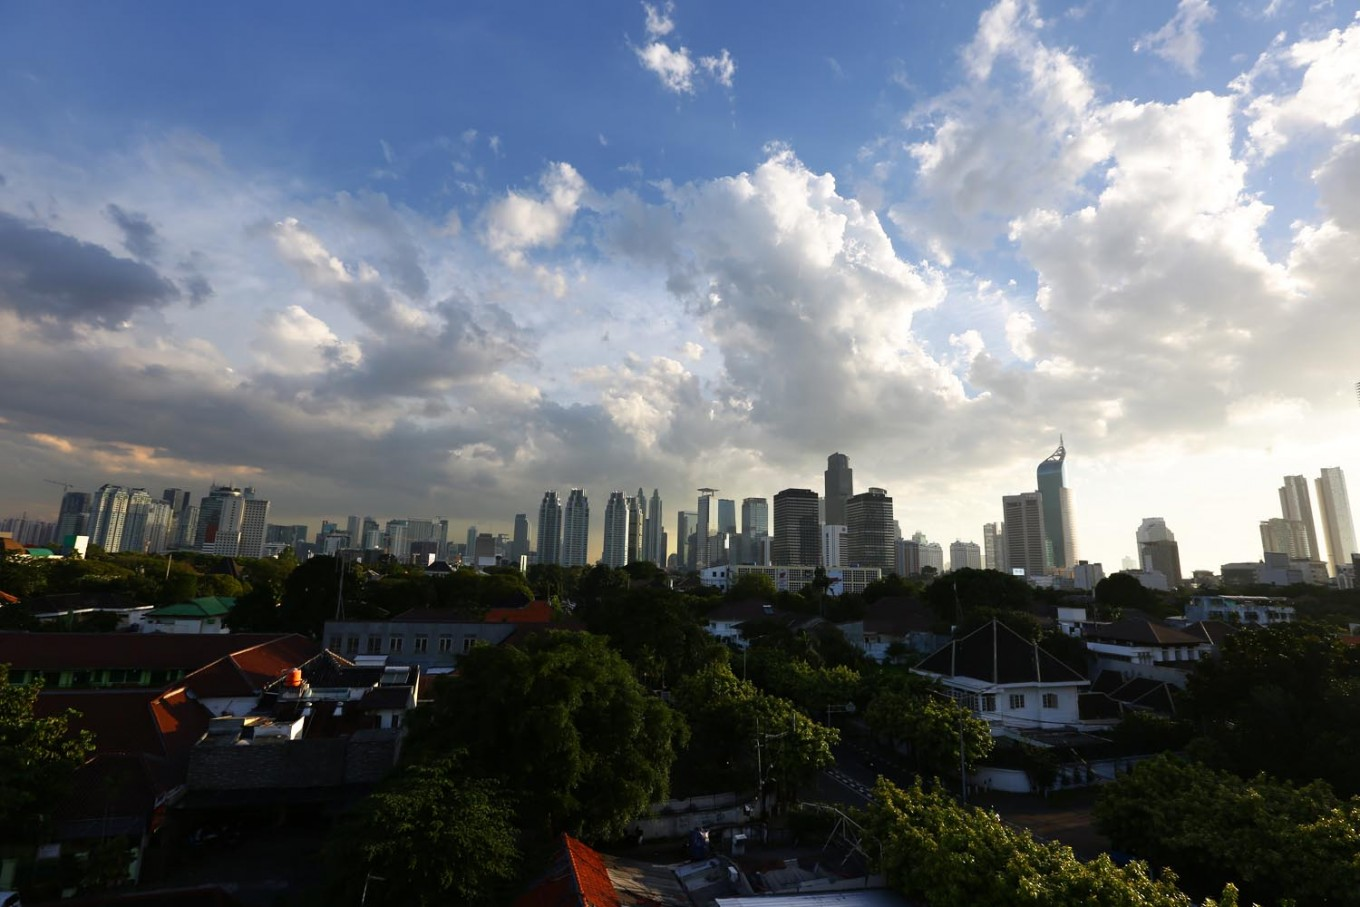 The Jakarta skyline as seen from the outdoor area of Por Que No.